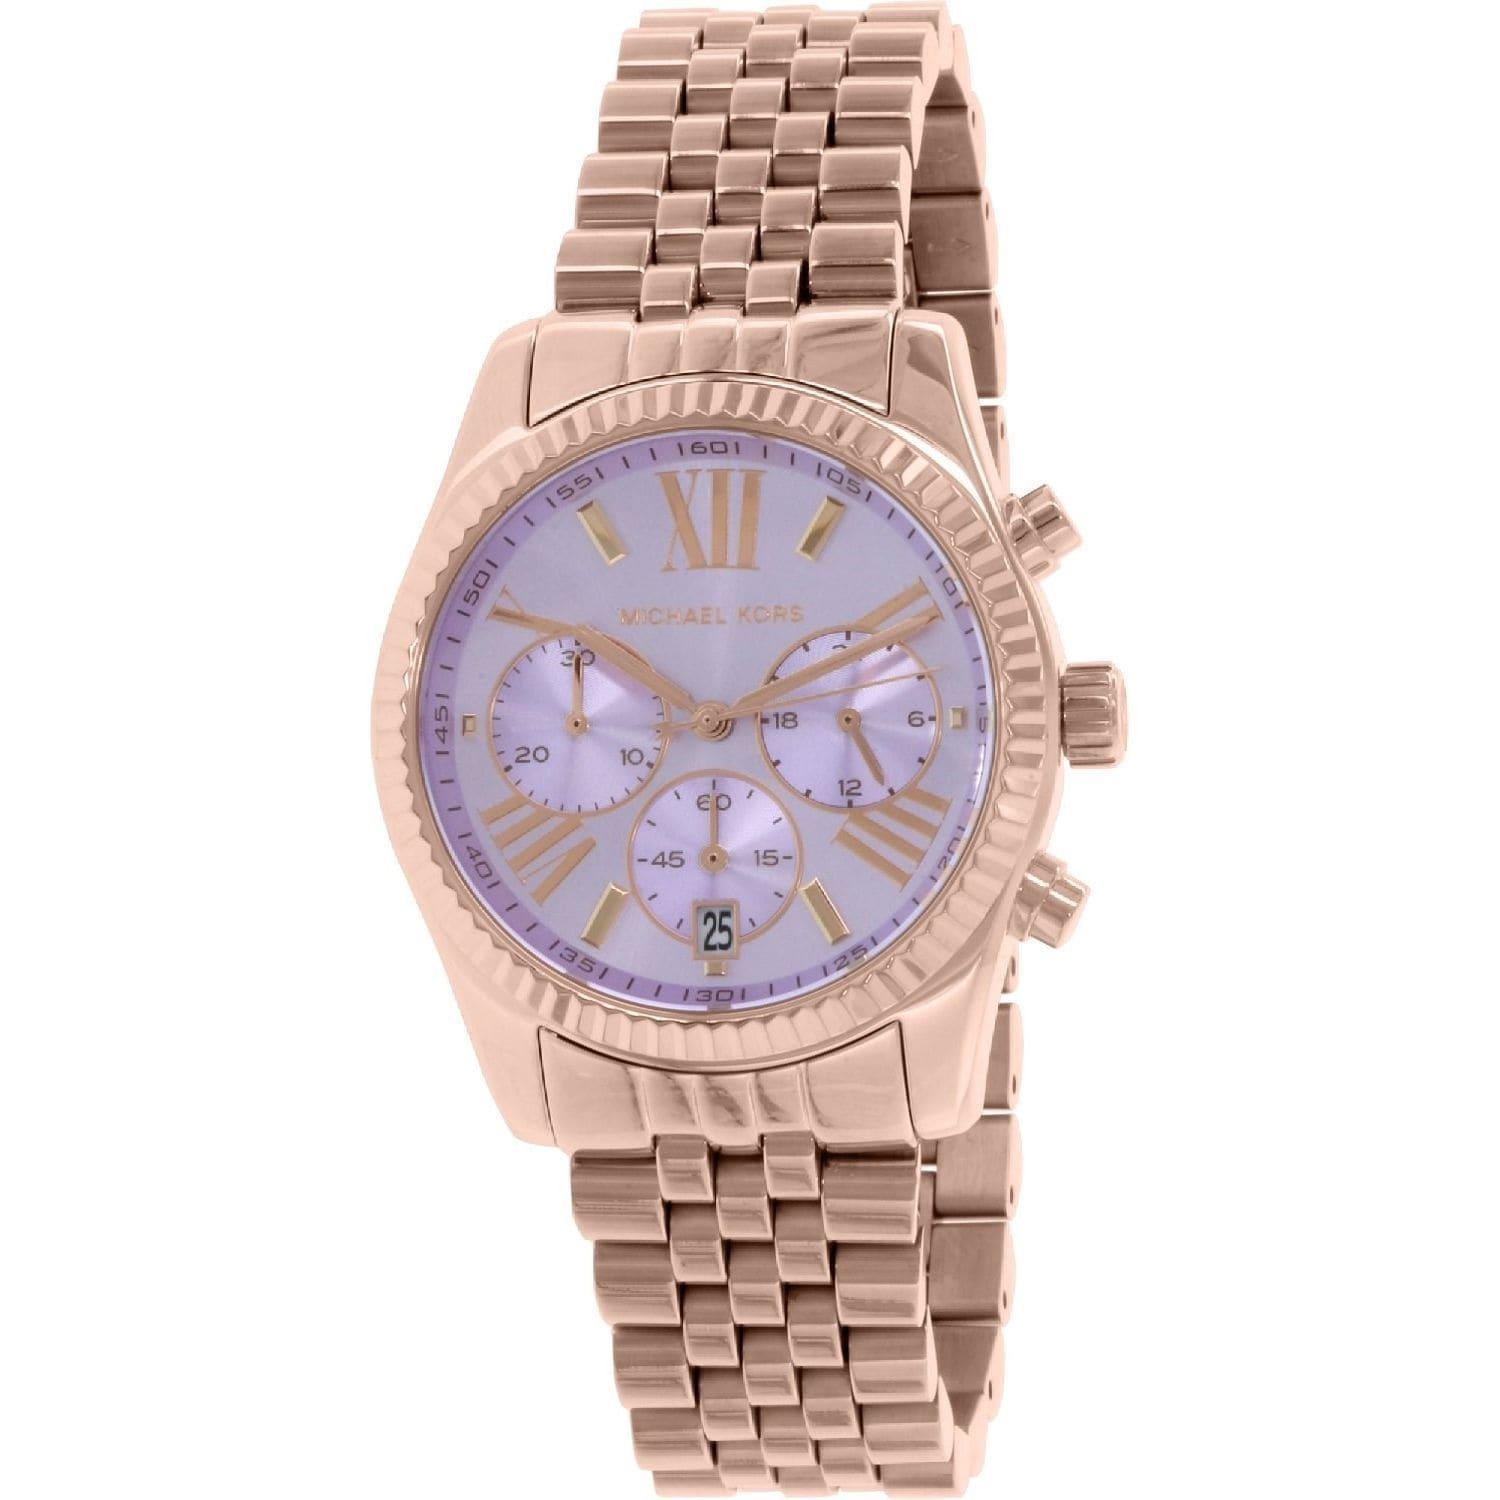 e568bf774ac5 Shop Michael Kors Women s  Lexington  Chronograph Rose-Tone Stainless Steel  Watch - Free Shipping Today - Overstock - 10275686